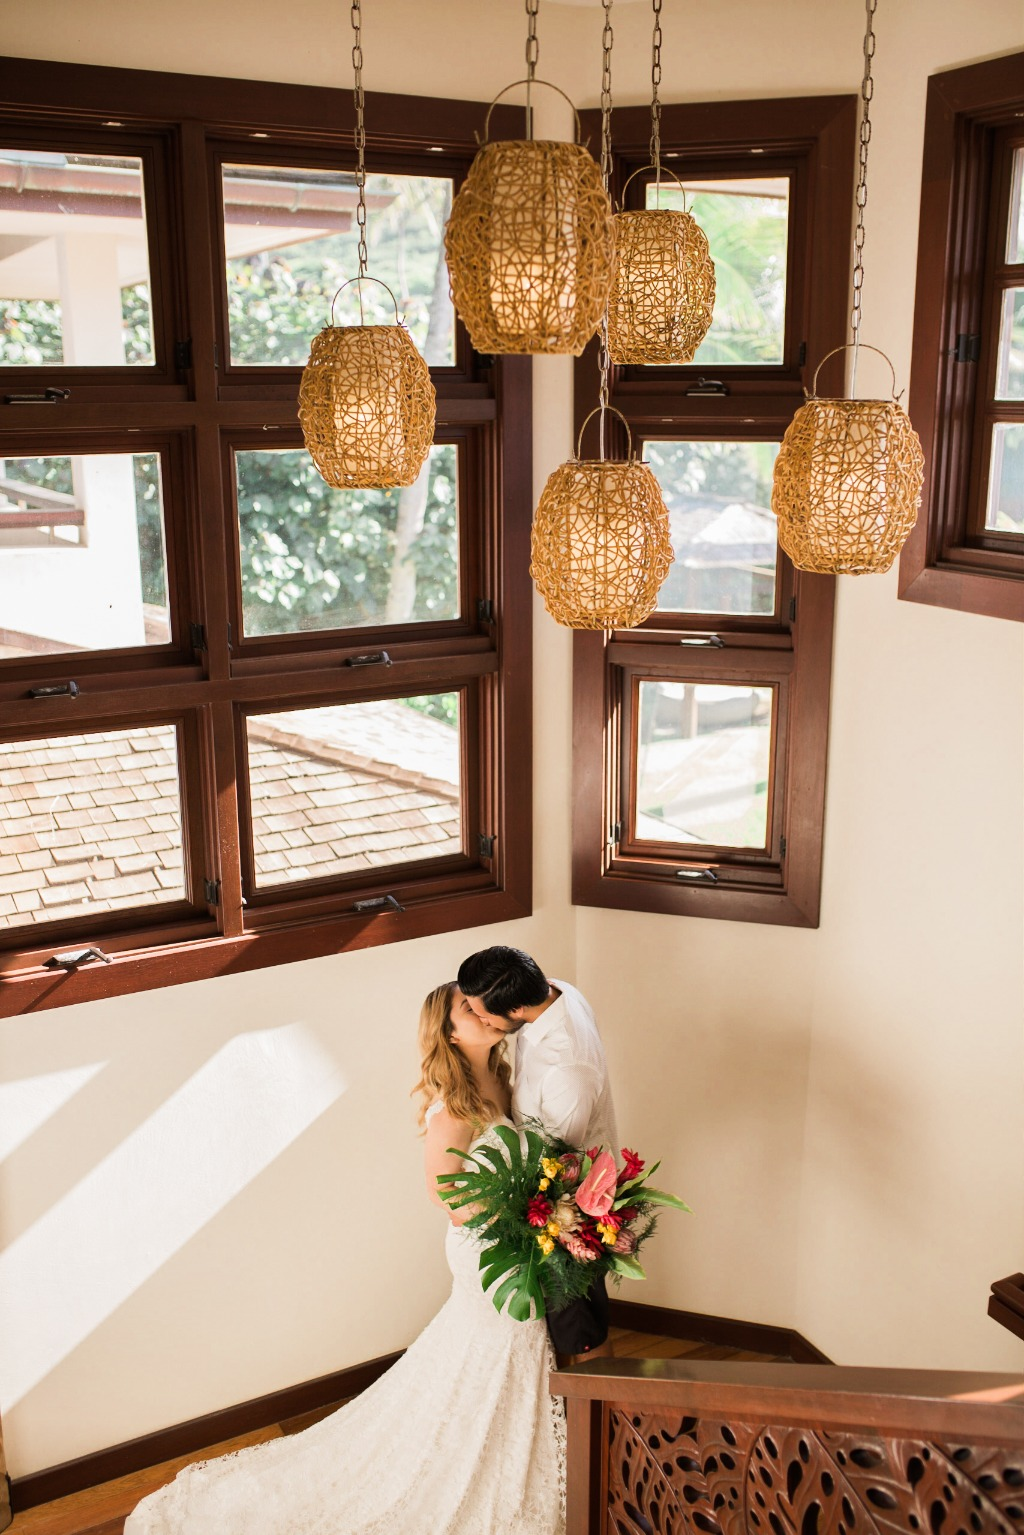 Tropical Bouquets and a staircase make for beautiful couples portraits!